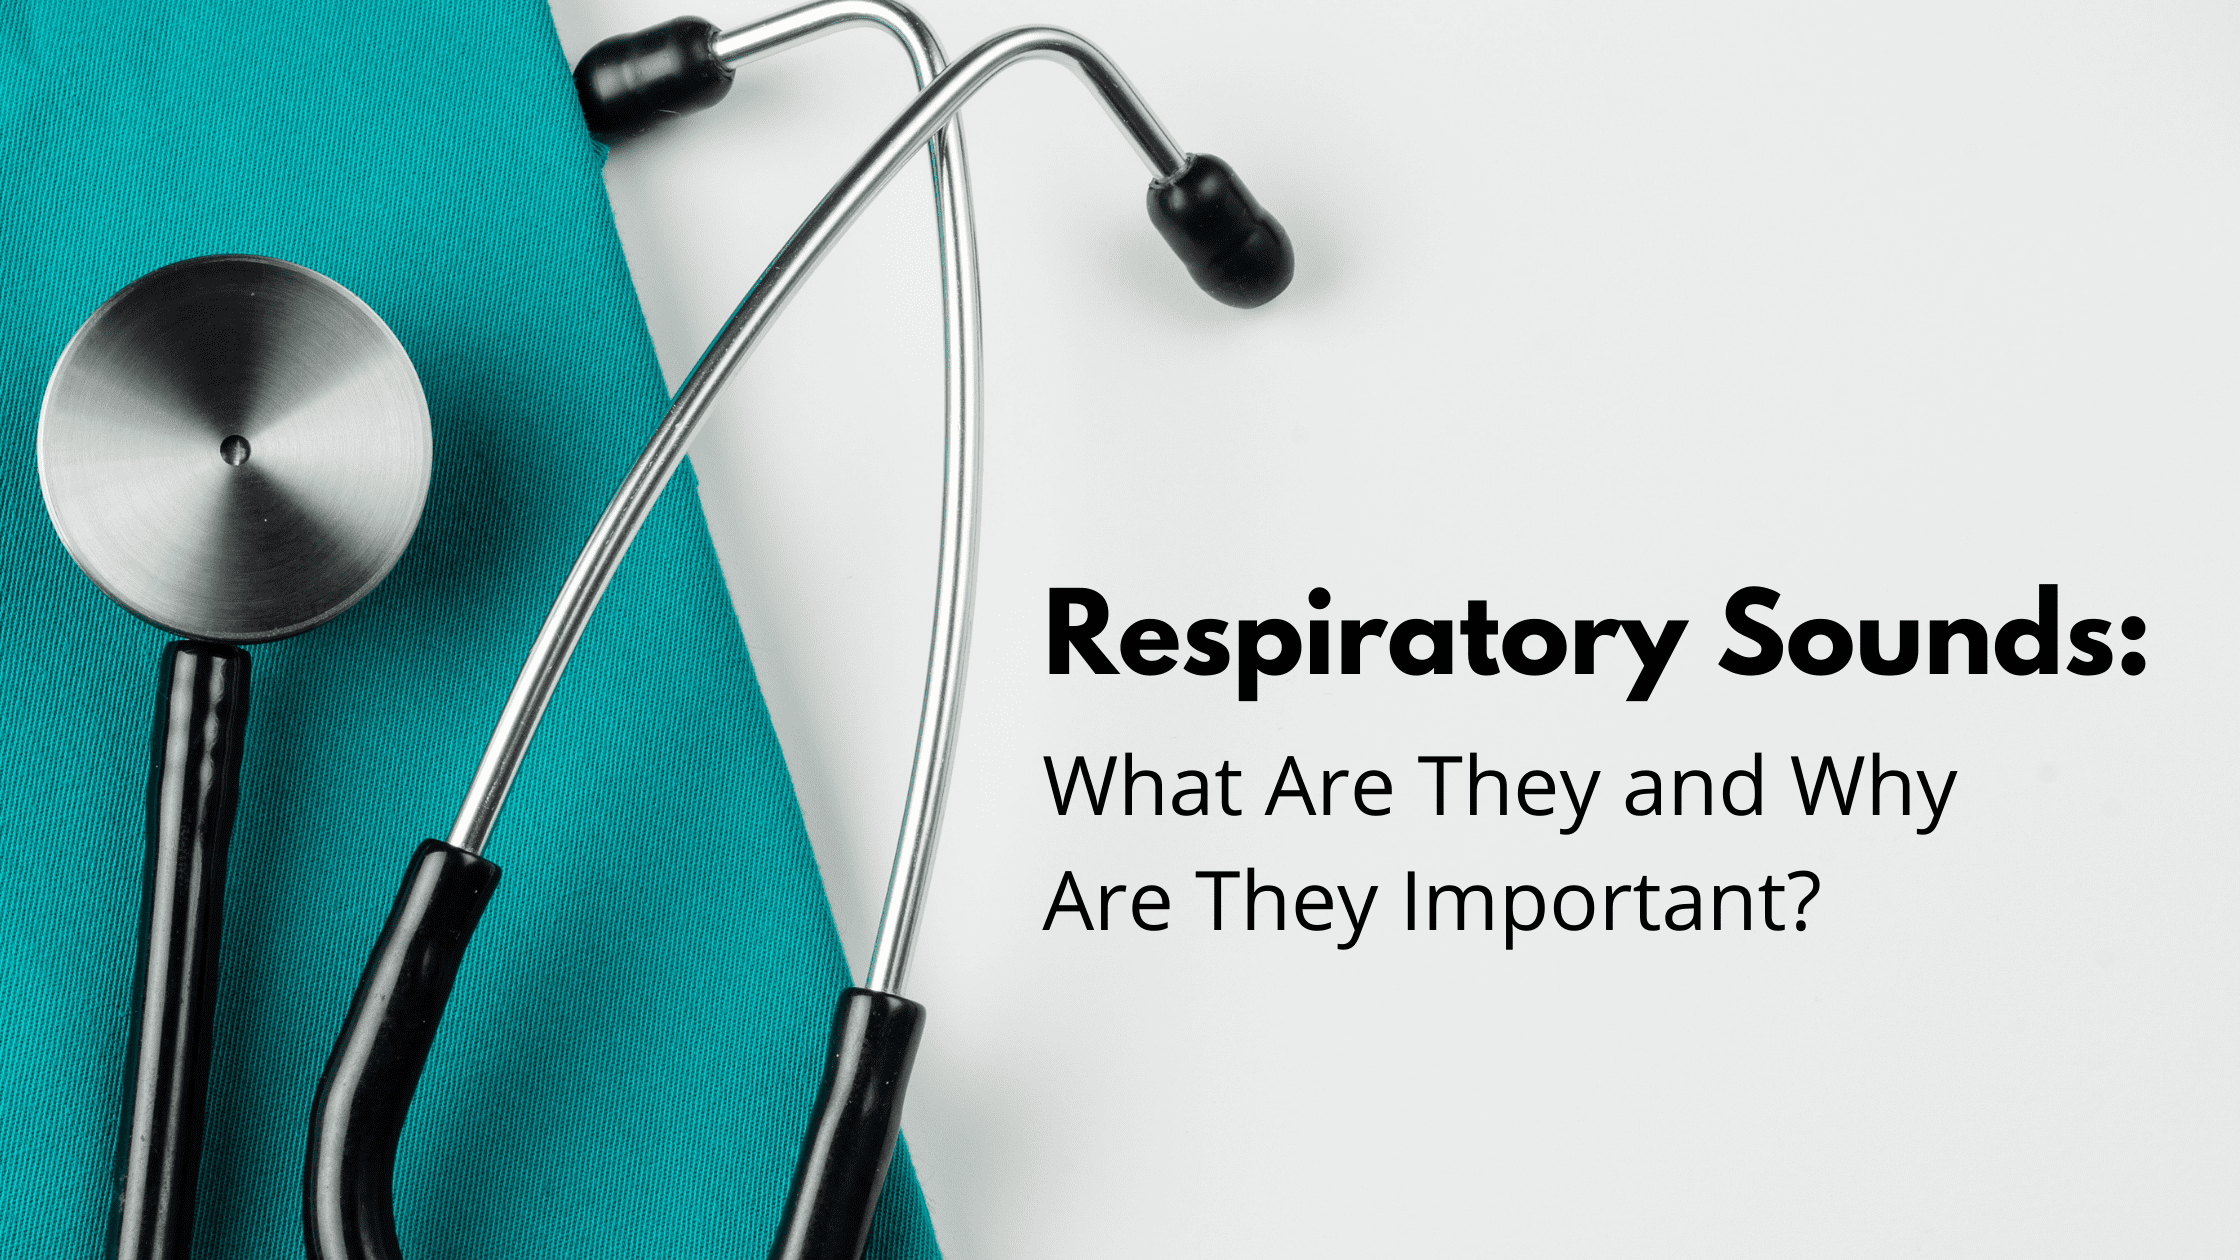 Respiratory Sounds What Are They and Why Are They Important